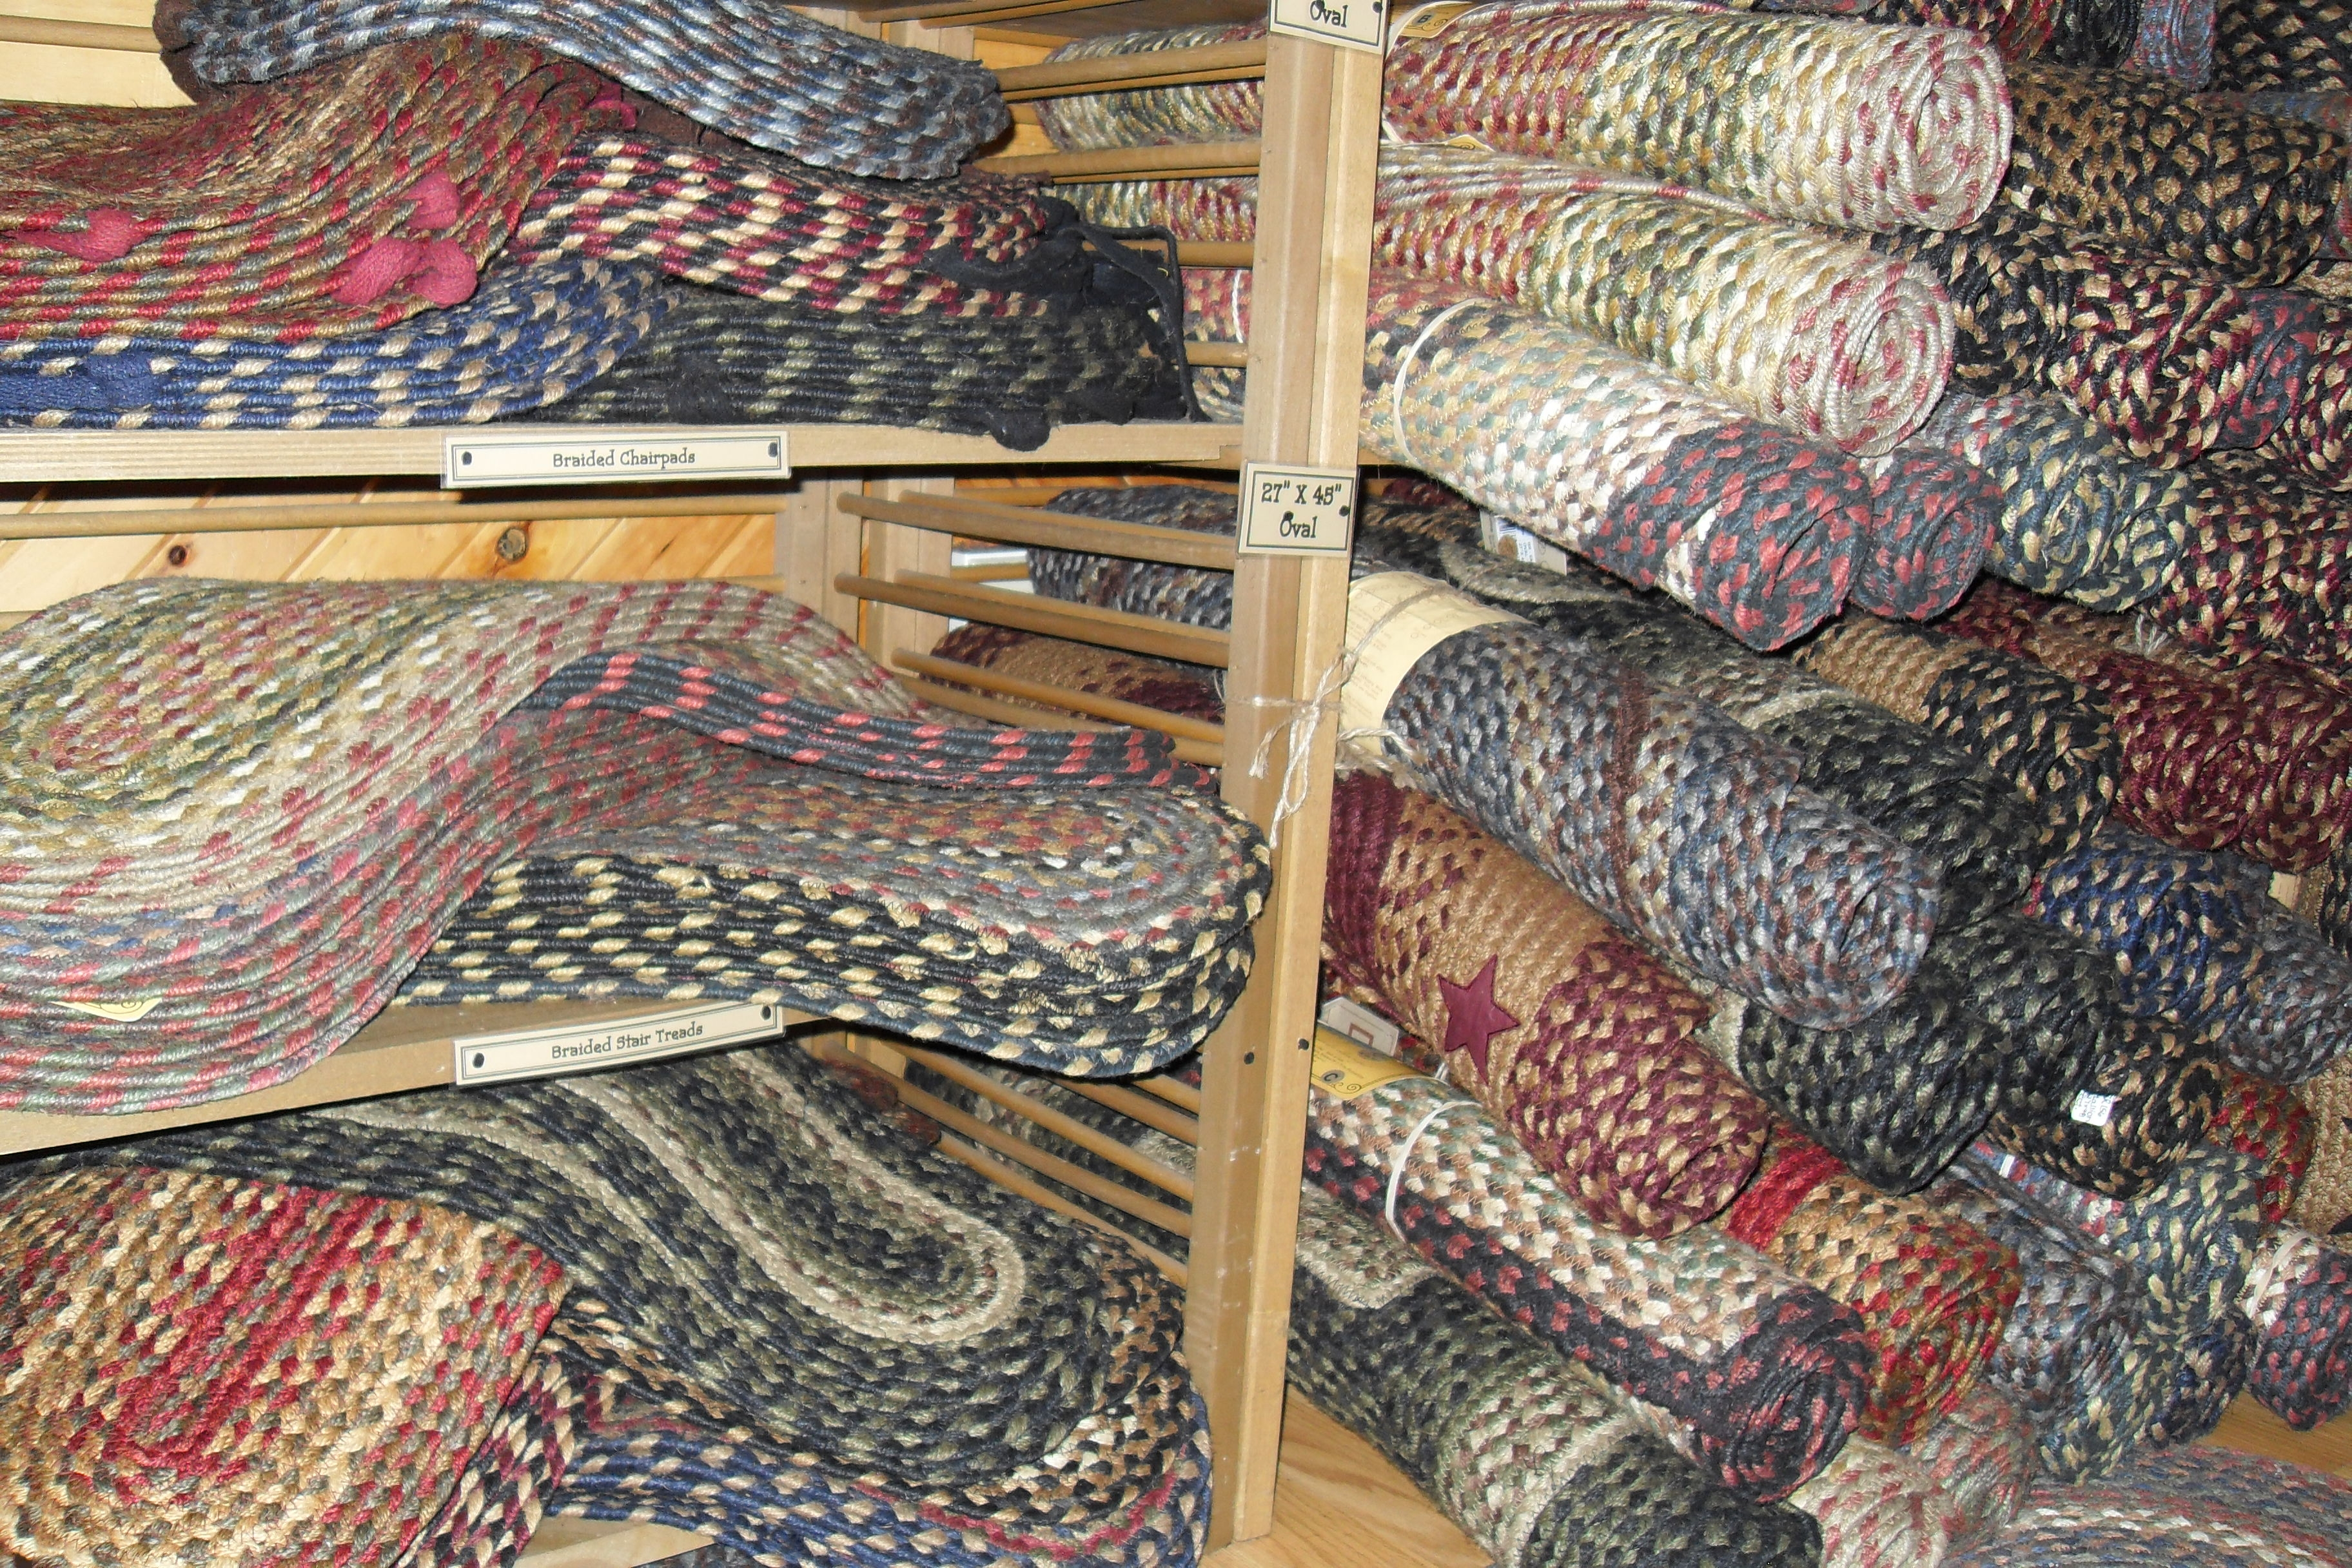 Braided Stair Tread Rugs Roselawnlutheran Throughout Stair Treads And Rugs (Image 2 of 15)